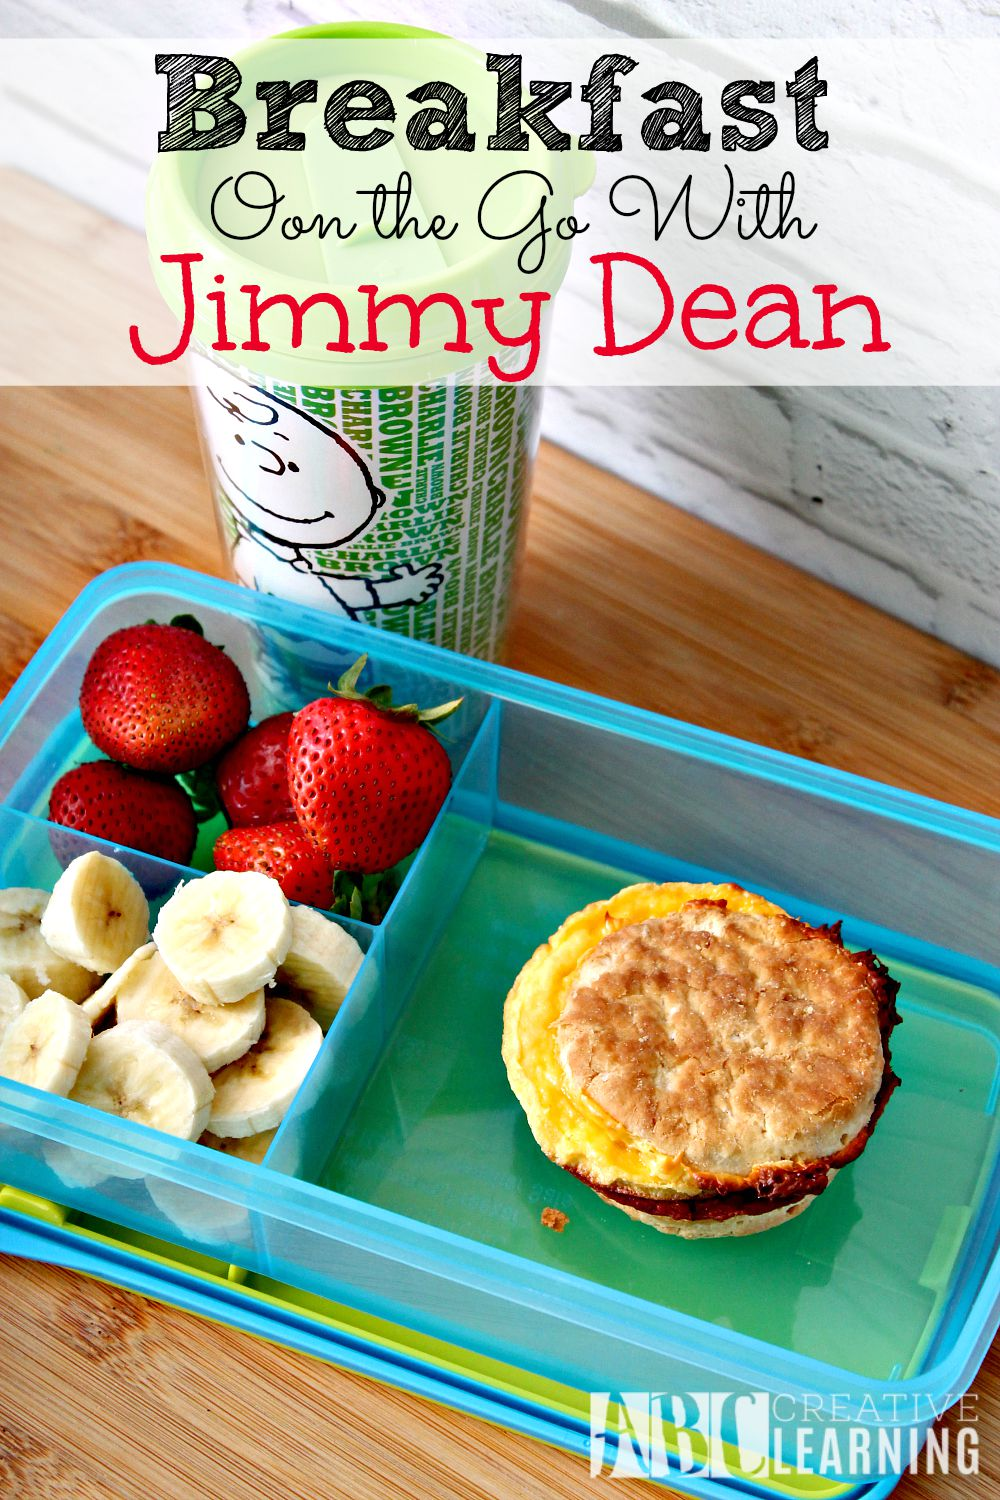 Breakfast on the go with Jimmy Dean